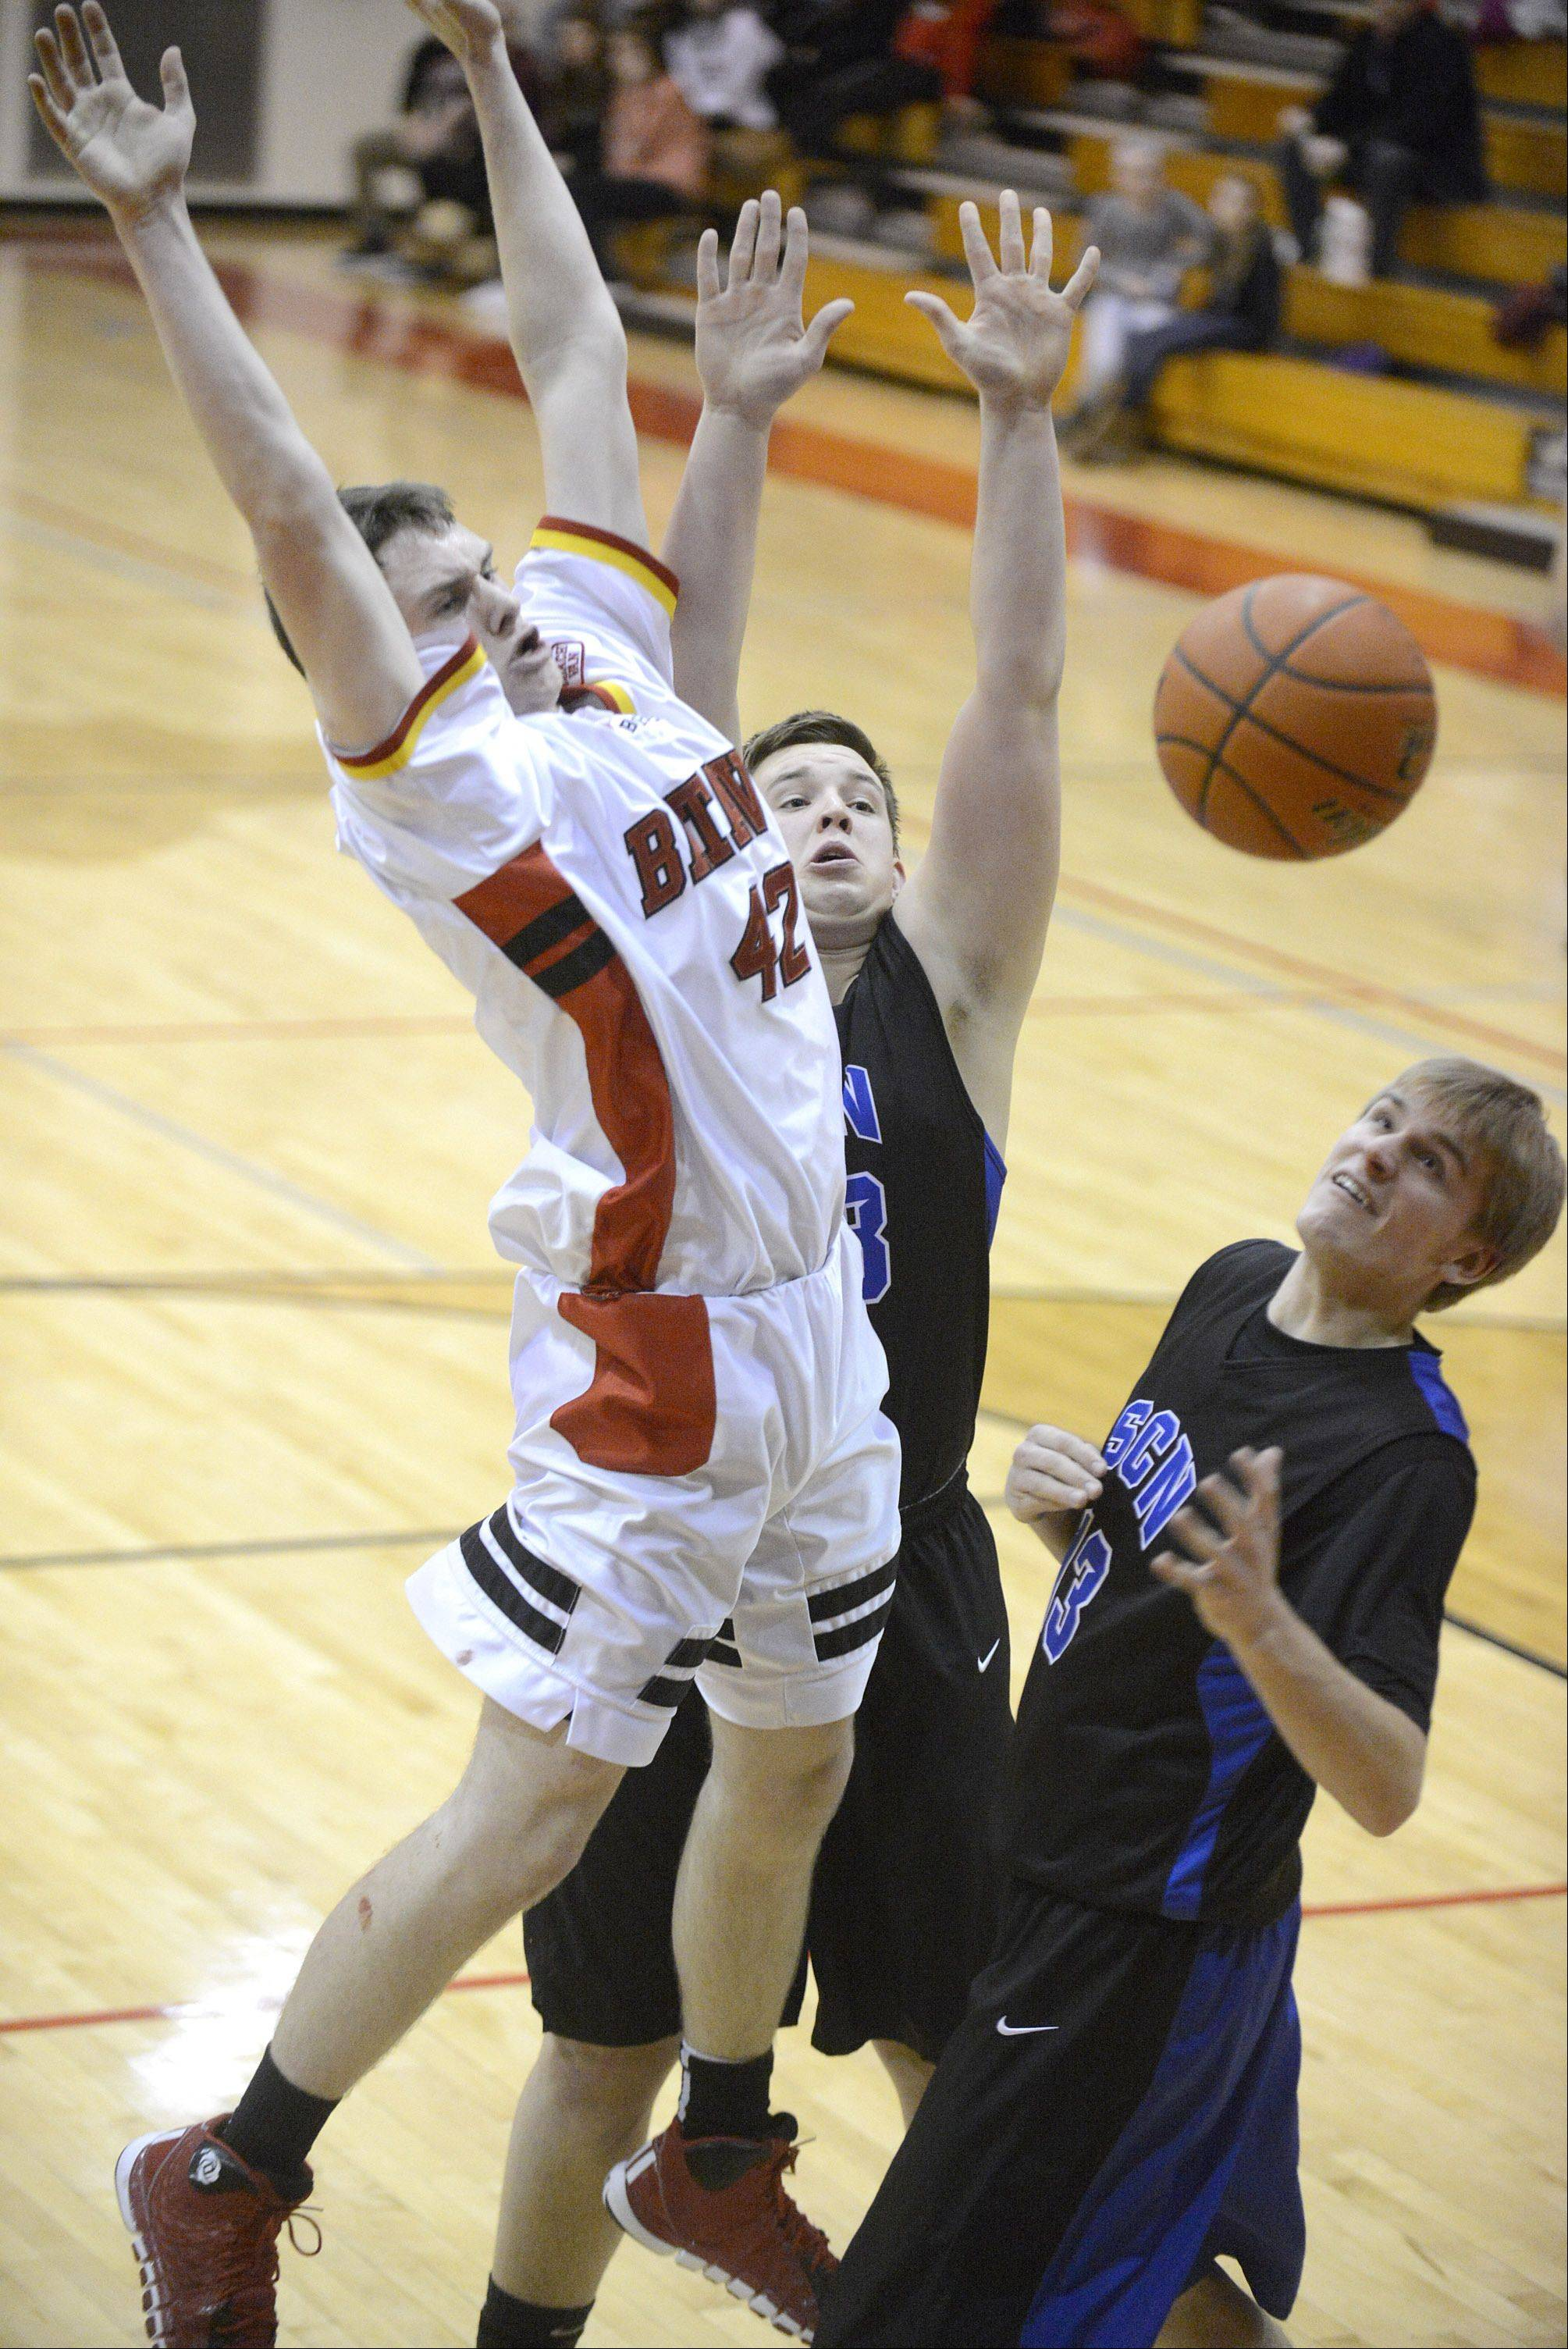 Batavia's Ryan Olson goes up for a basket near St. Charles North's Camden Cotter and David Pozna in the third quarter.